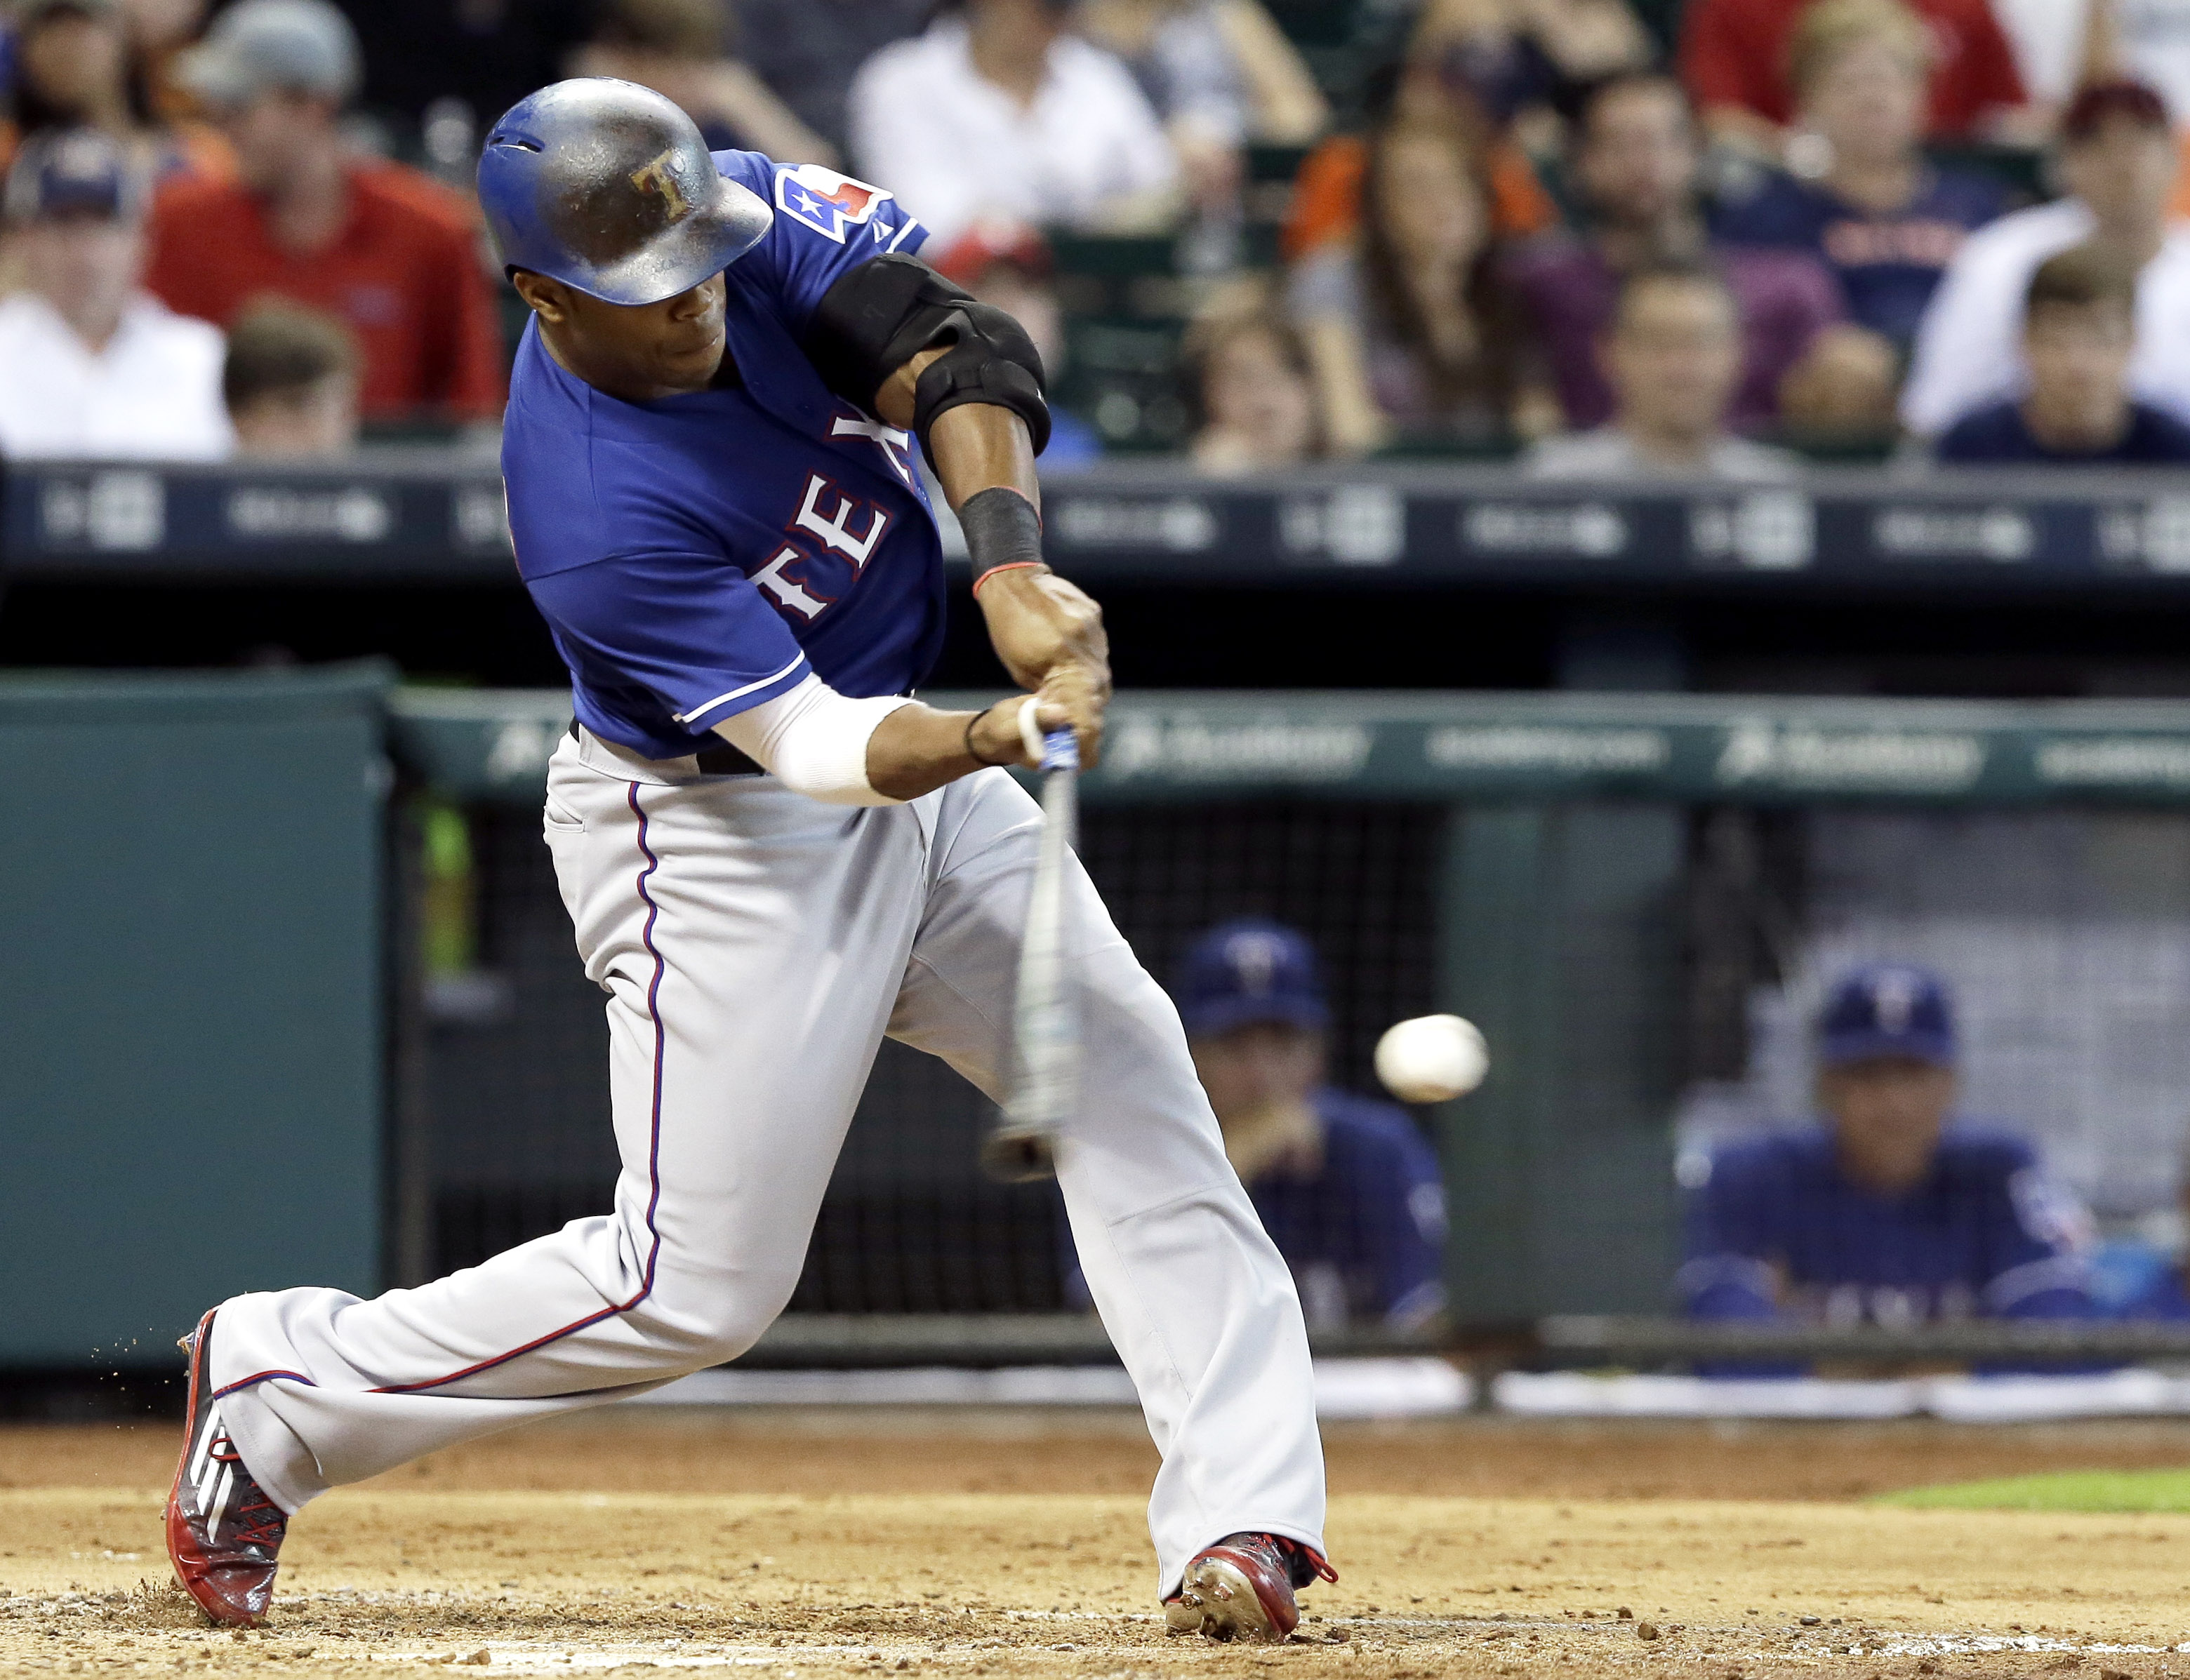 Texas Rangers' Delino DeShields hits a single to left field against the Houston Astros in the third inning of a baseball game Friday, July 17, 2015, in Houston. (AP Photo/Pat Sullivan)